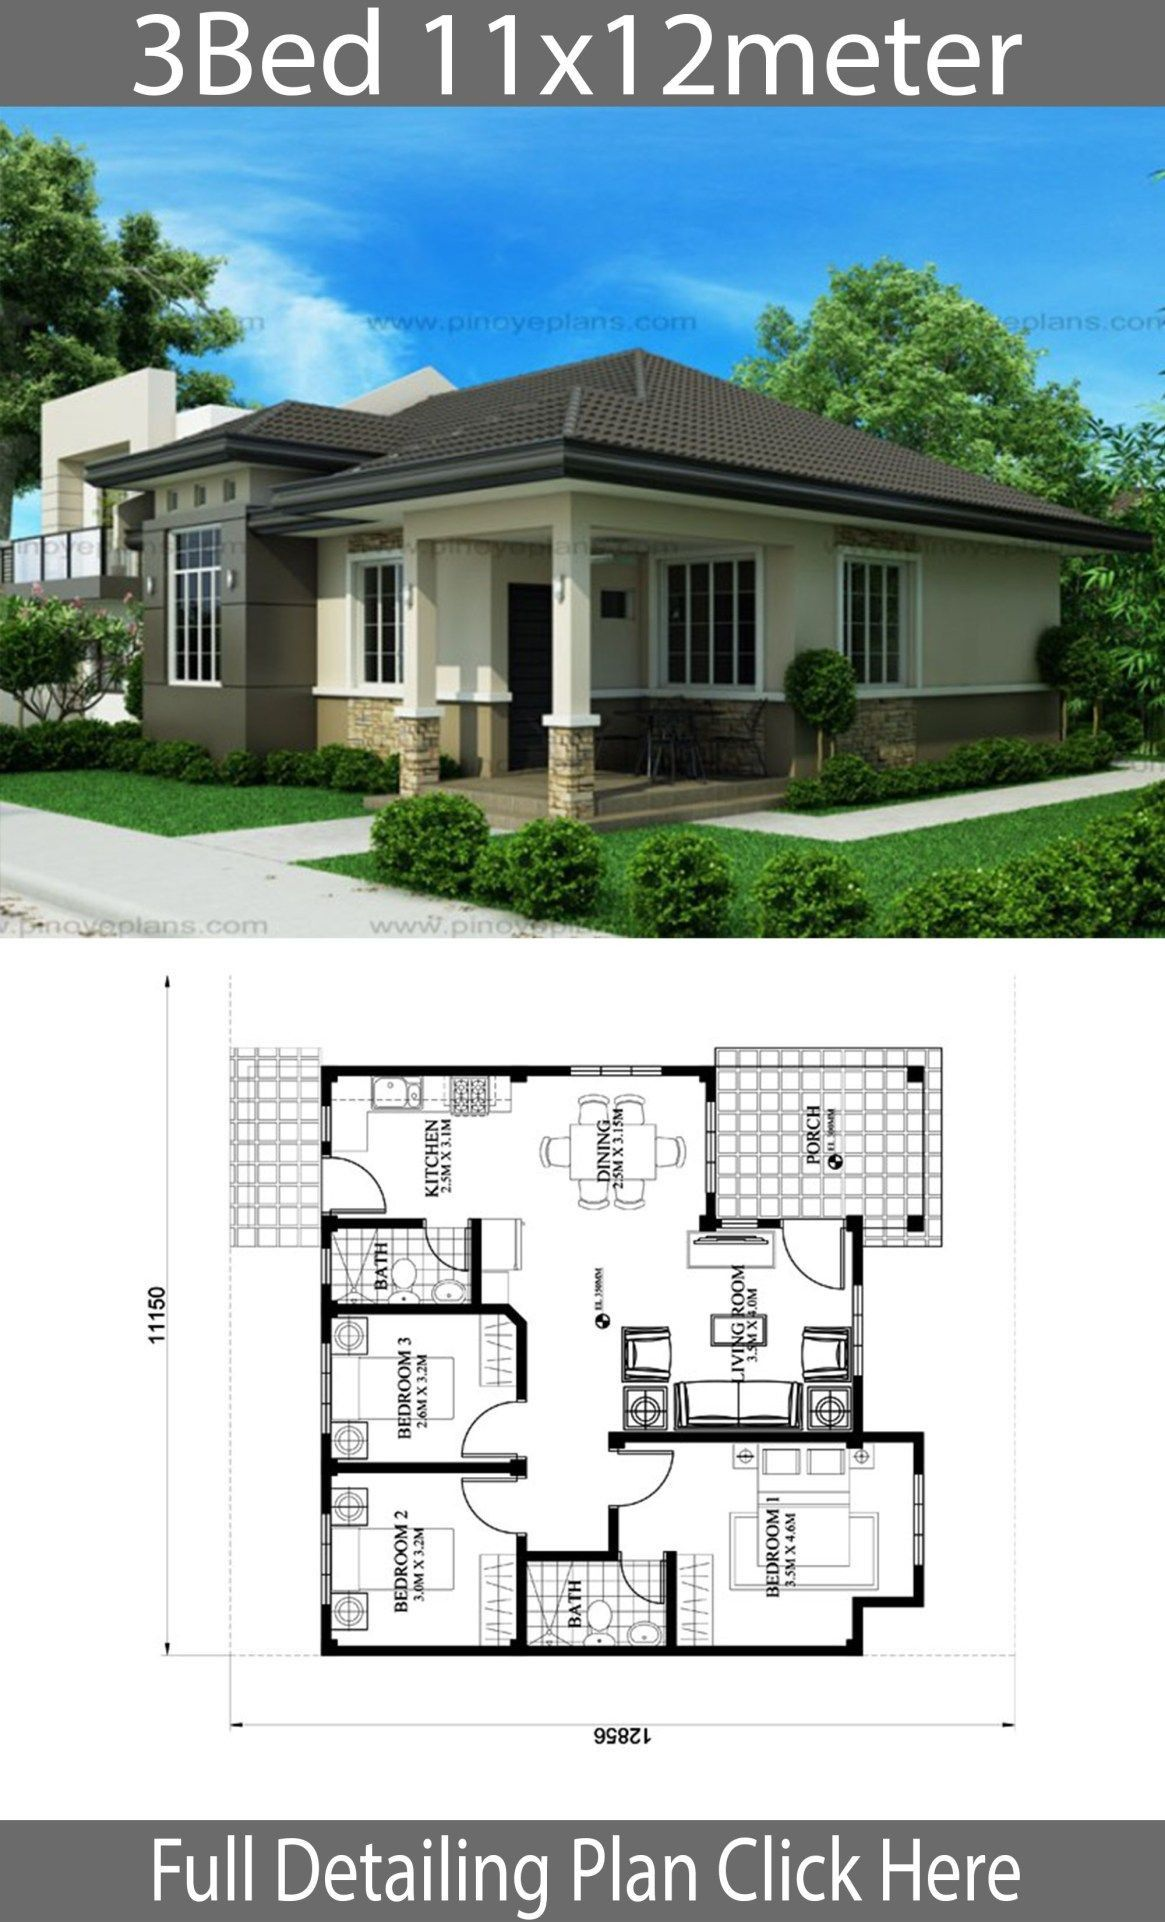 House Design 11x12m With 3 Bedrooms House Design Pictures Beautiful House Plans House Plan Gallery